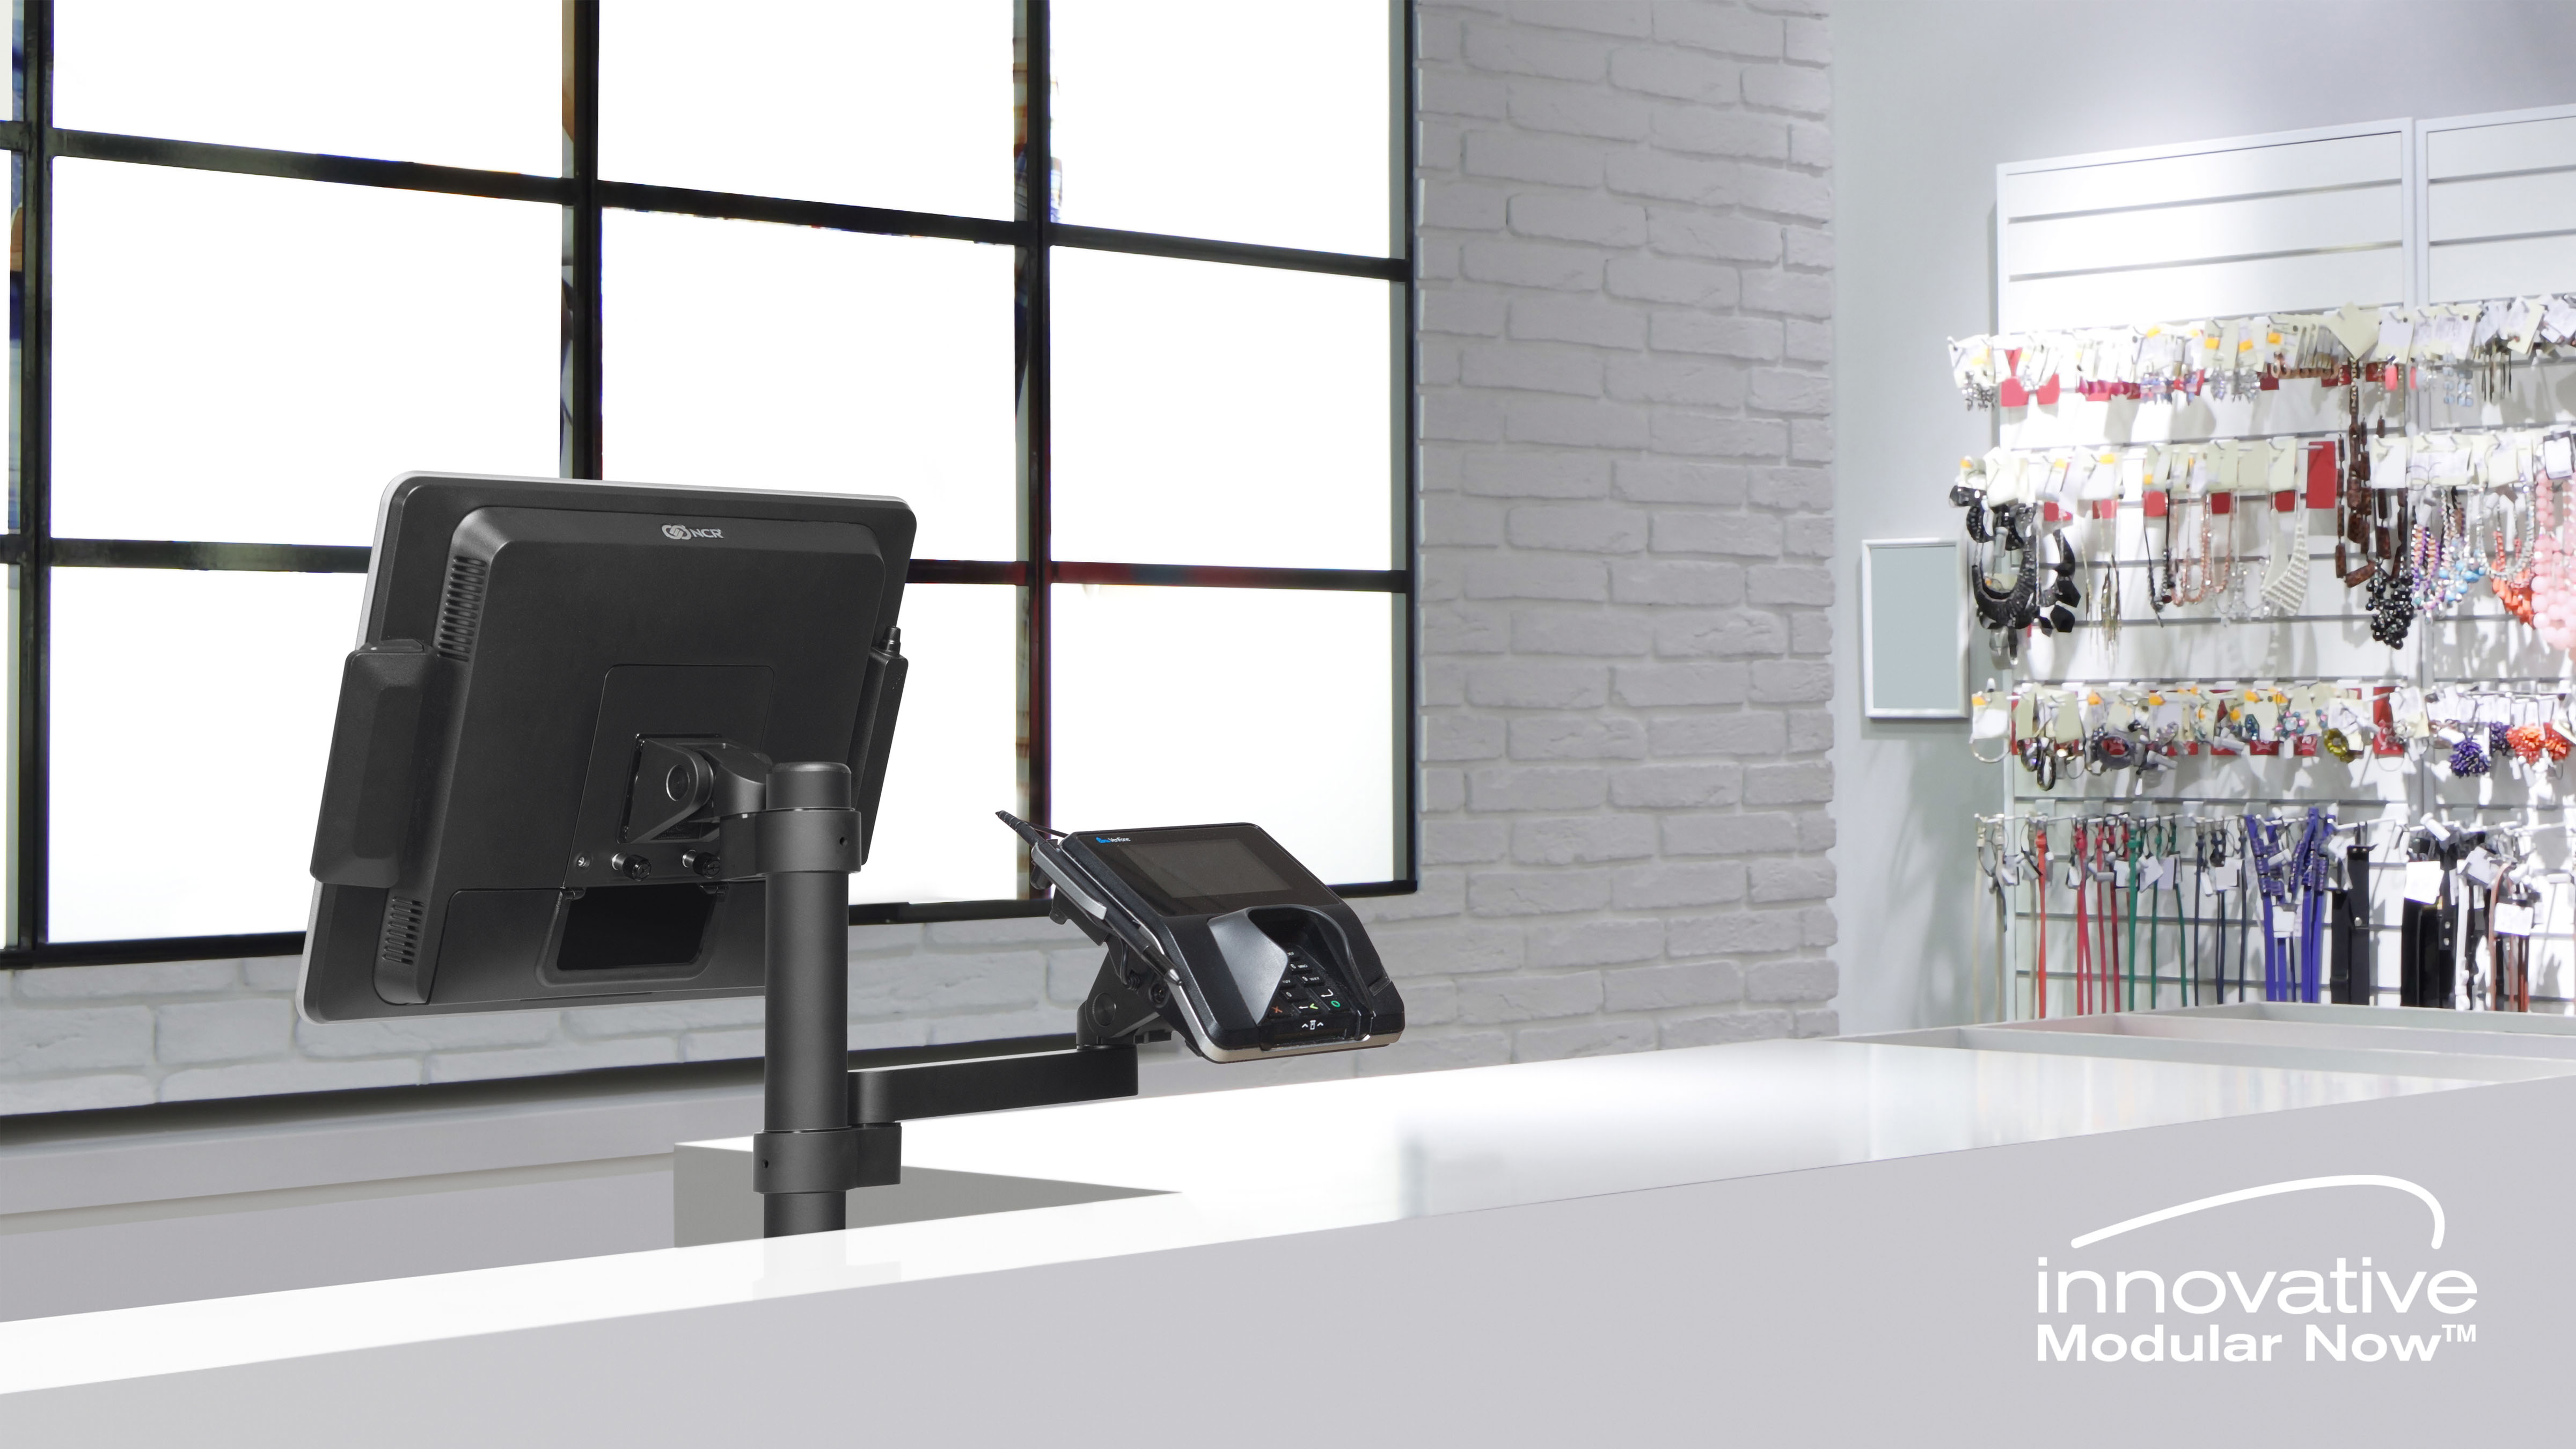 Meet Modular Now™ - a Customizable Mount Solution for Point of Sale by Innovative